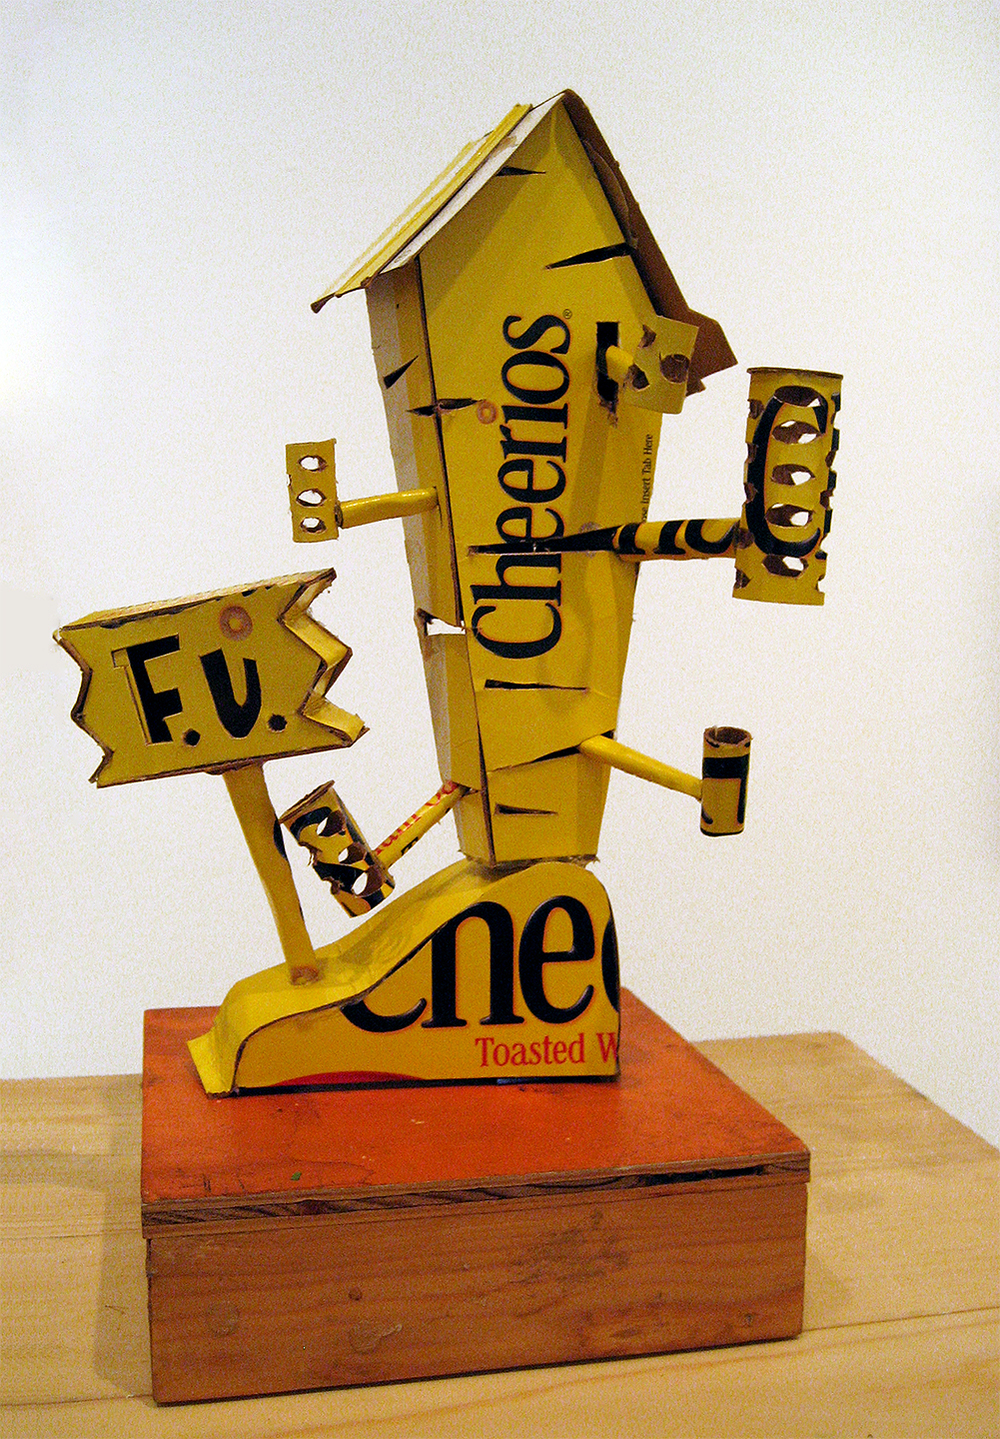 WAYNE WHITE, Cheerios Smoke Shack, 2008-09, cardboard, acrylic paint, 11 x 10 x 10 inches